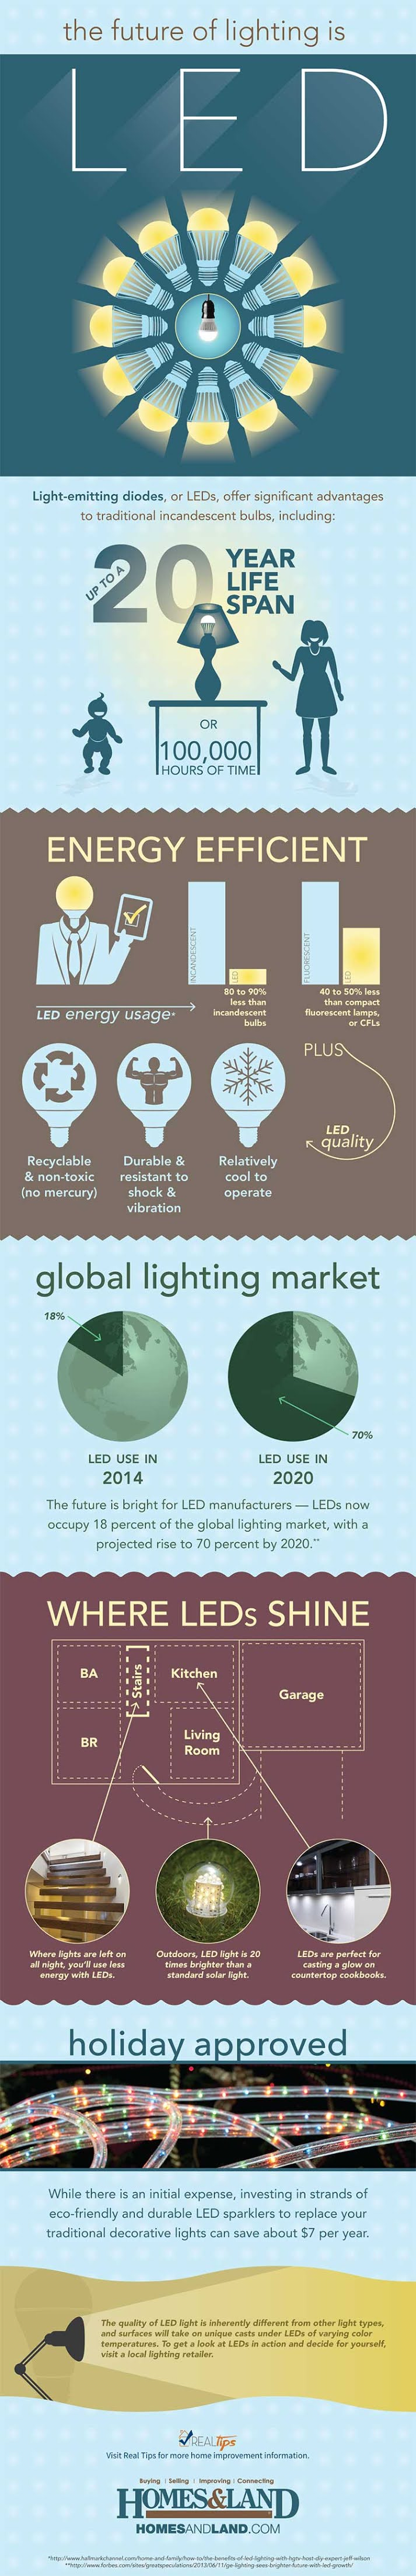 The Future Of Lighting Is LED #infographic